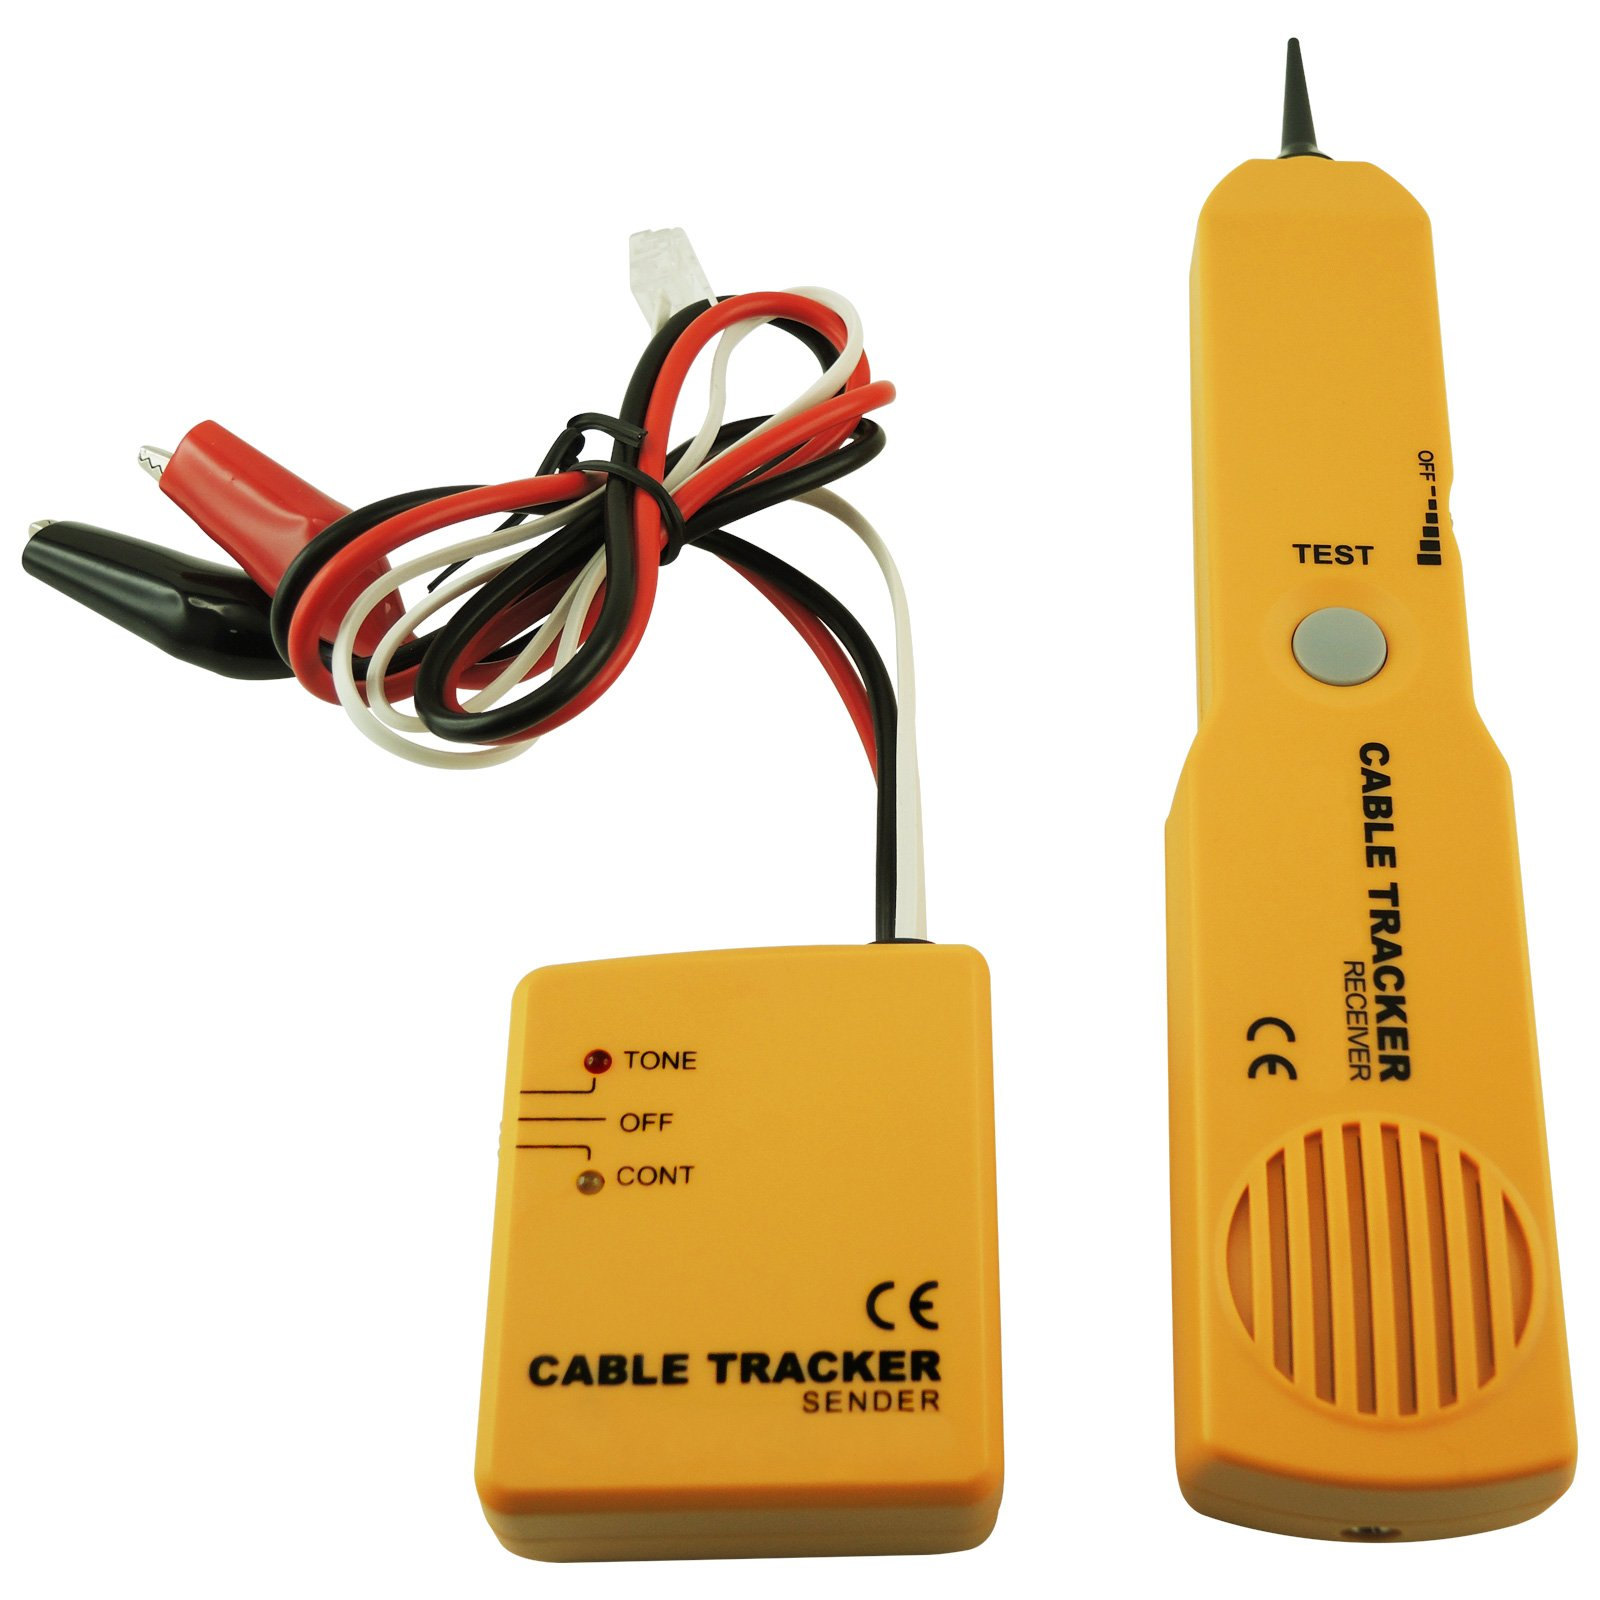 Telephone Cable Tracker Wire Tracer Tester Sender & Receiver Kit ...